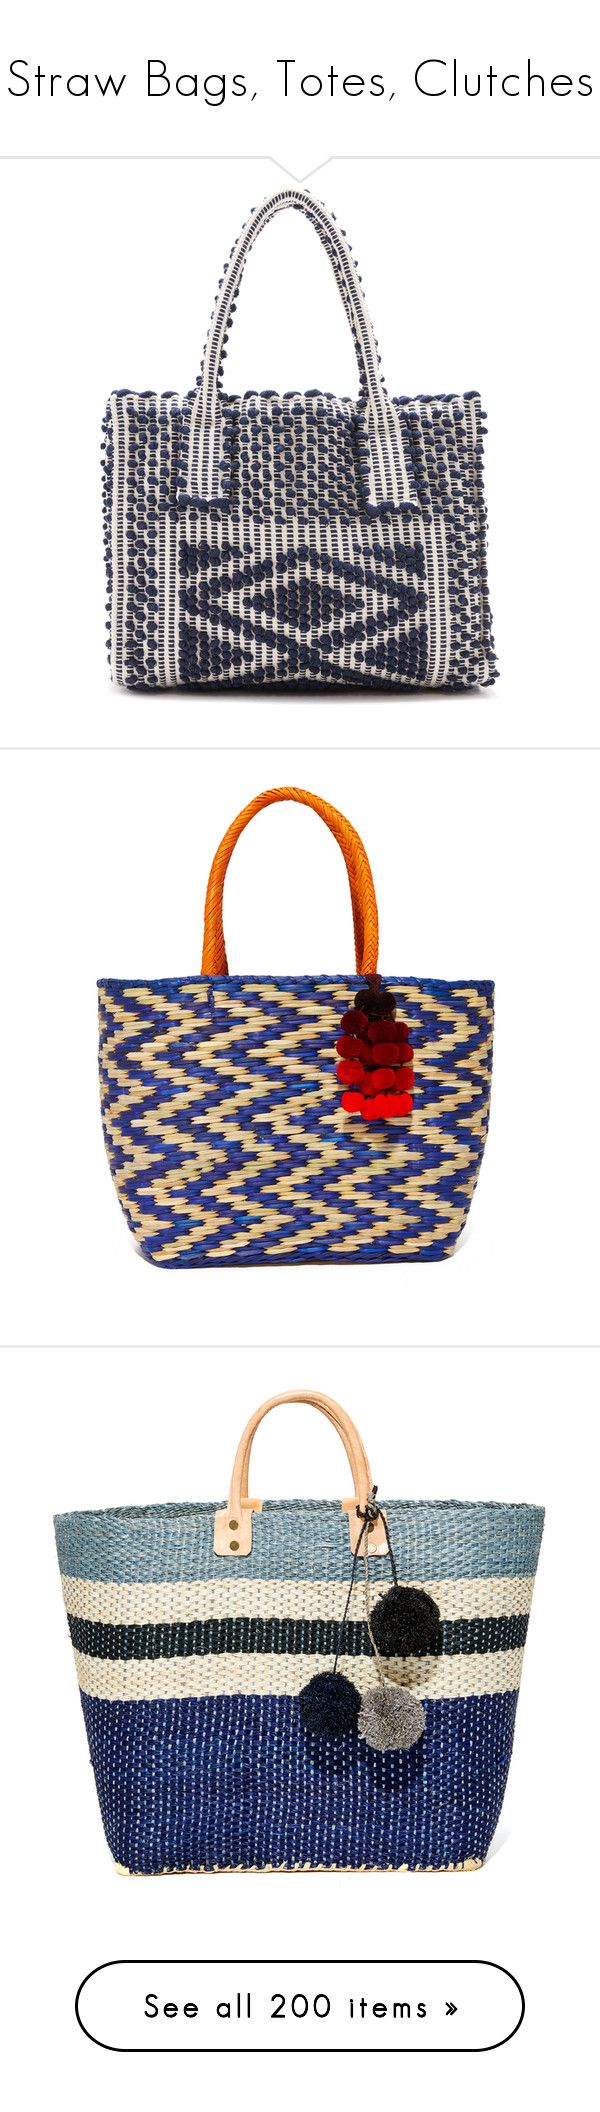 """""""Straw Bags, Totes, Clutches"""" by leaff88 ❤ liked on Polyvore featuring bags, handbags, shoulder bags, navy, shoulder bag tote, navy tote bag, white shoulder bag, pocket tote bag, navy tote and tote bags"""